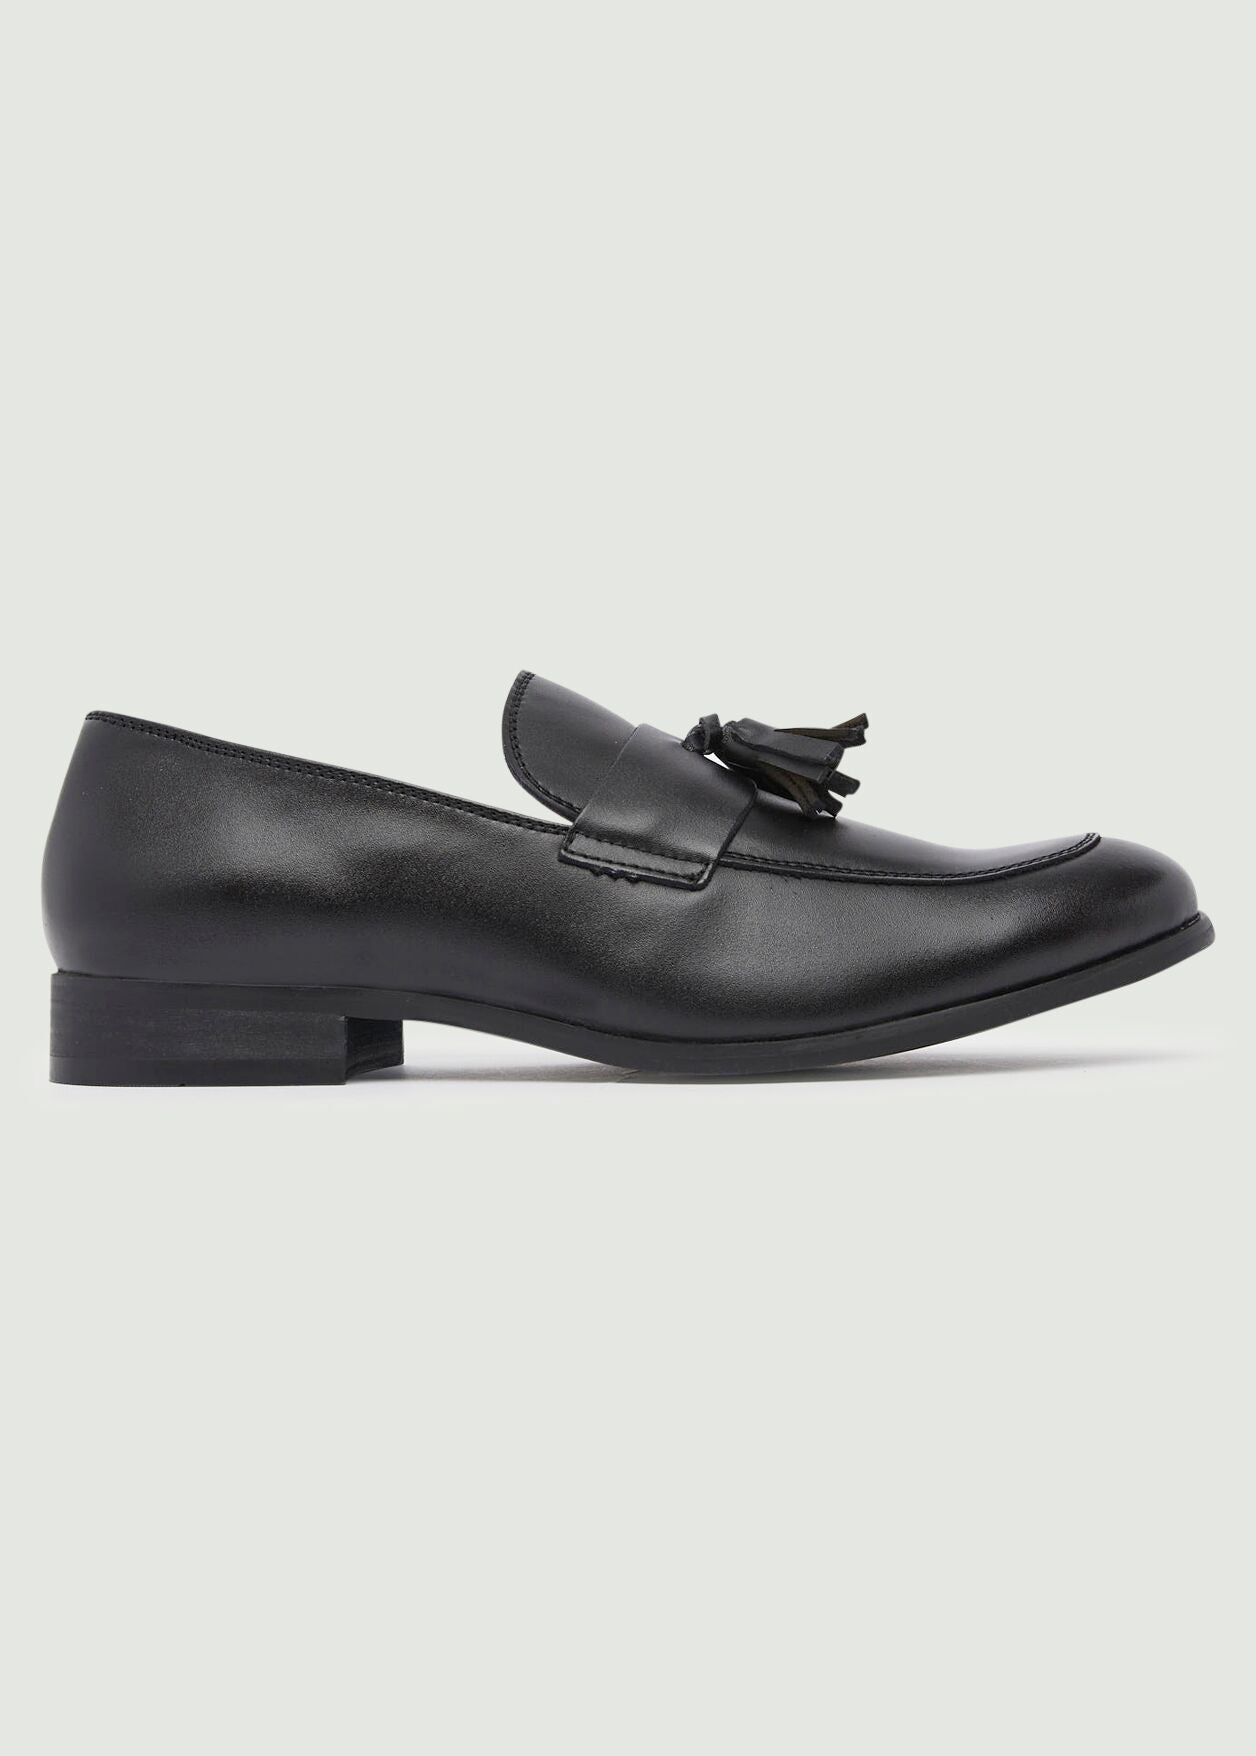 Moorhouse Tassle Leather Loafers - Black